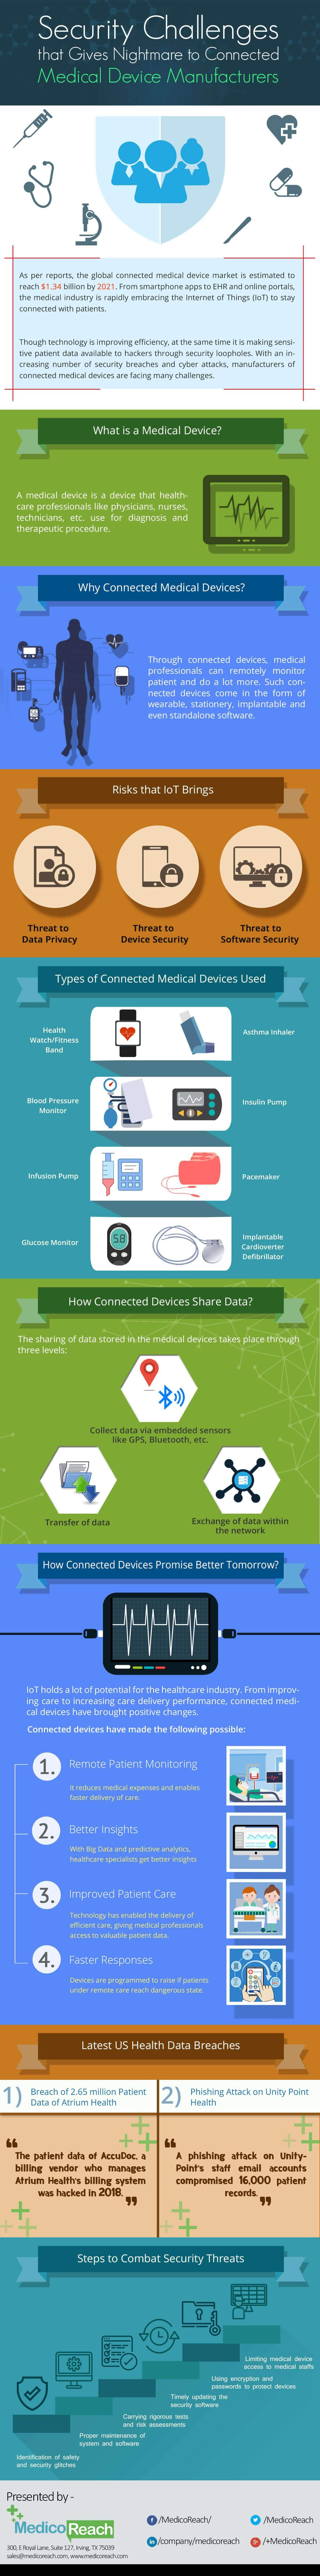 Security Challenges for Connected Medical Device Manufacturers #infographic